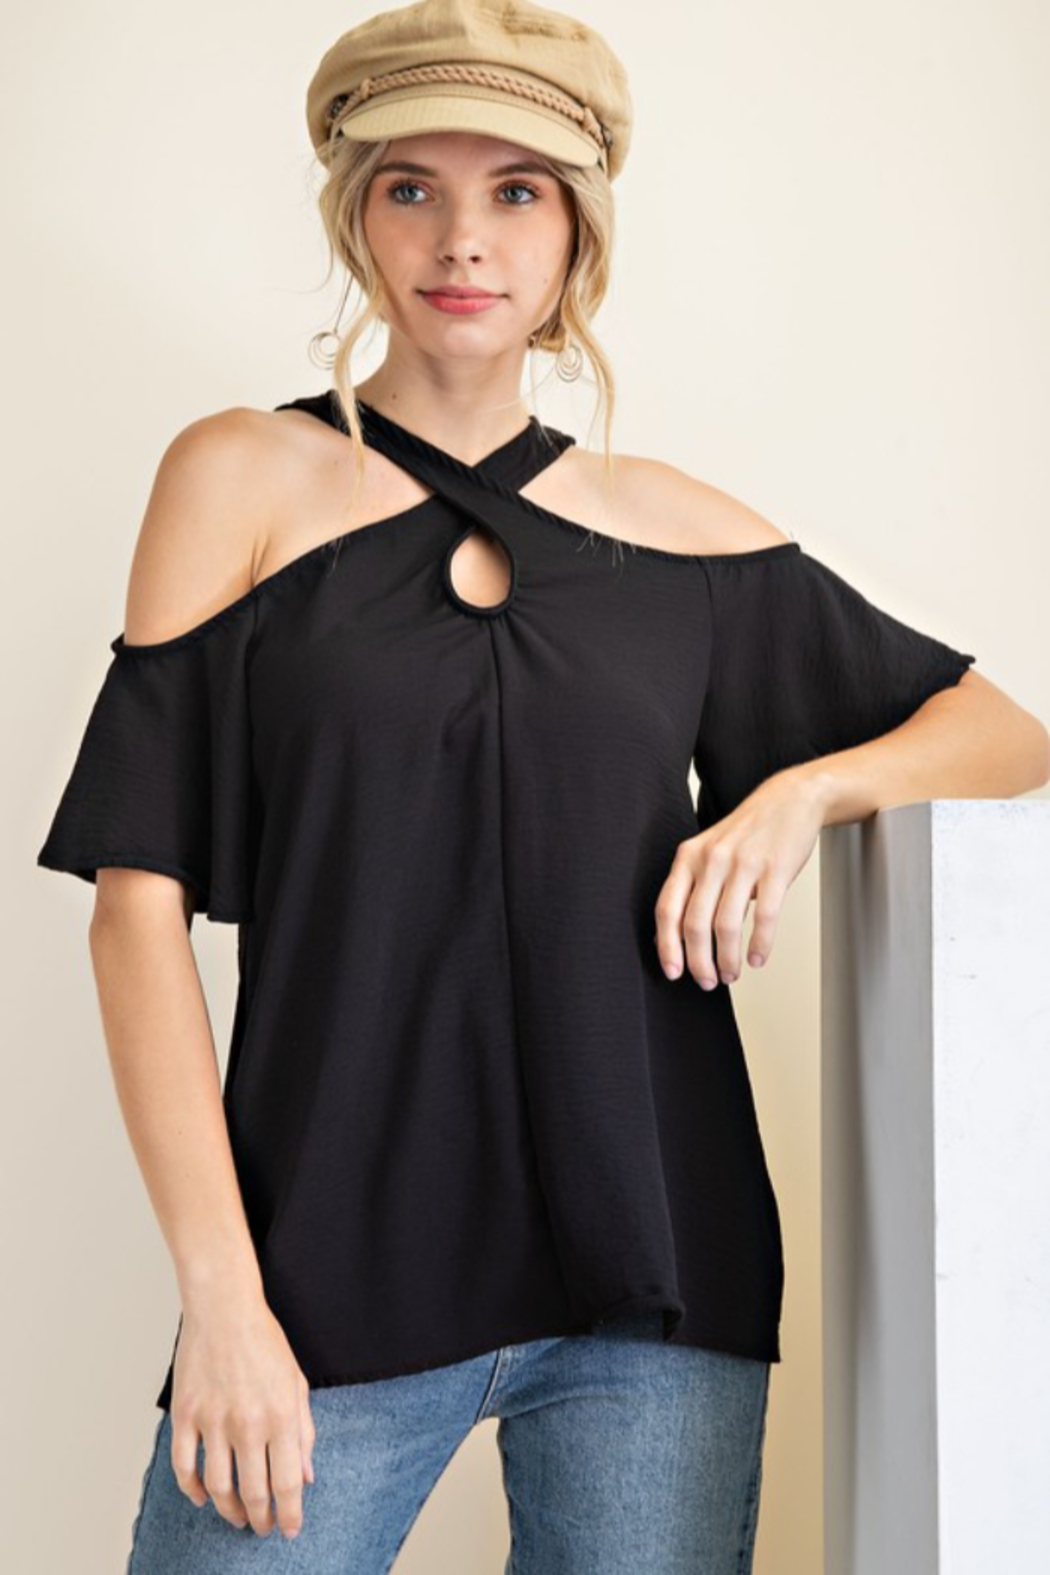 143 Story Criss Cross Neck Flare Sleeve Top - Main Image